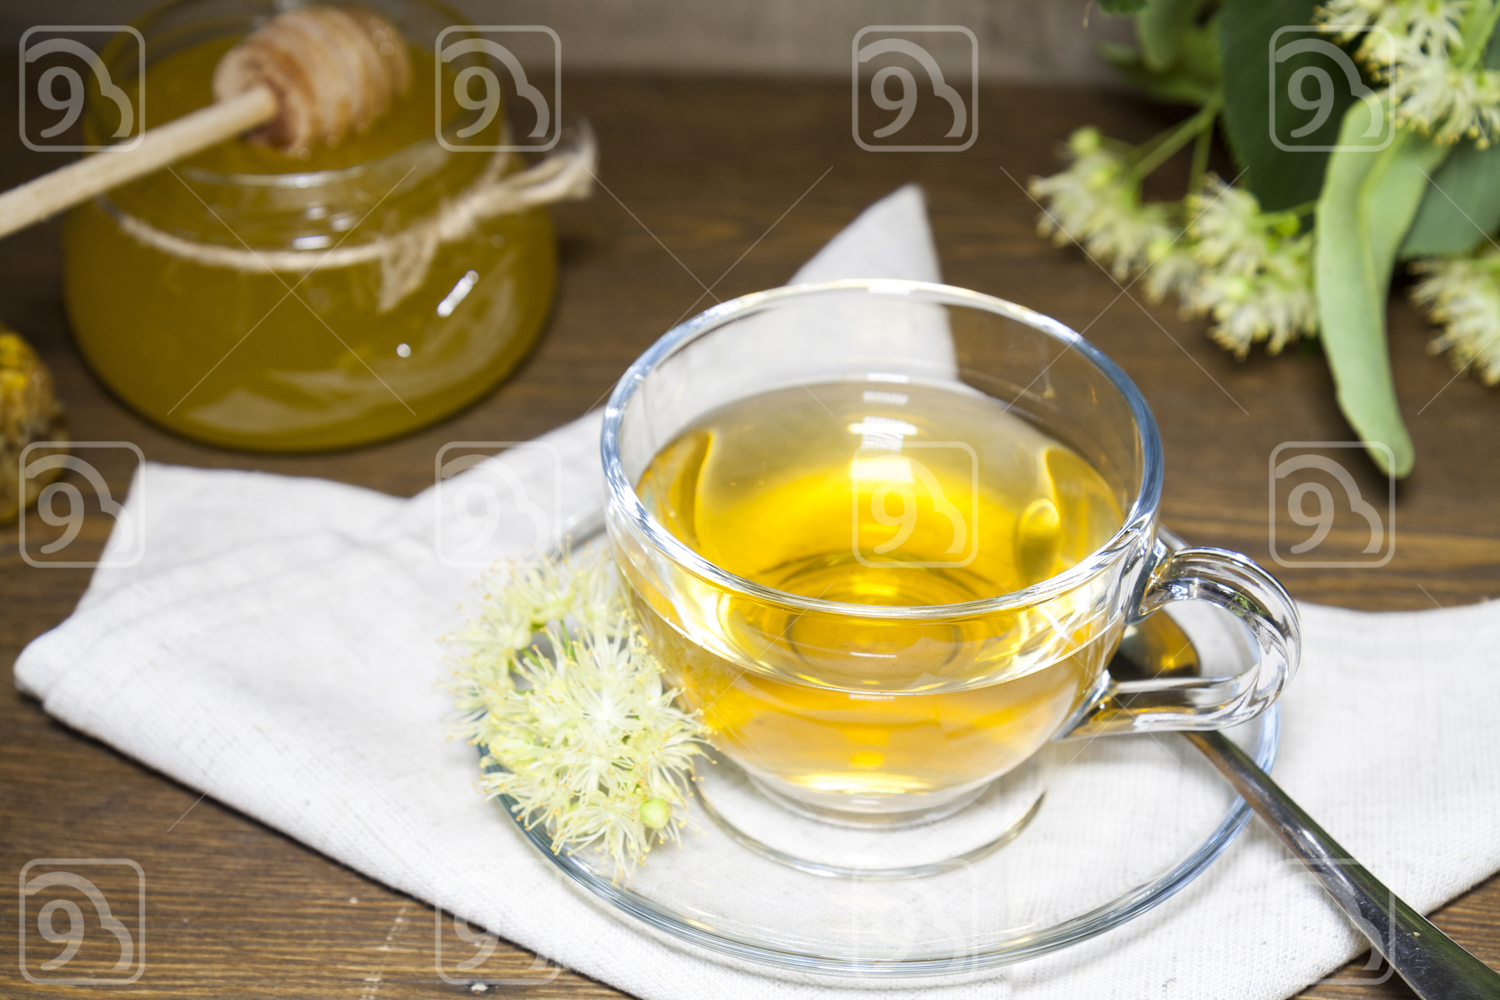 Linden tea in glass cup and jar with honey